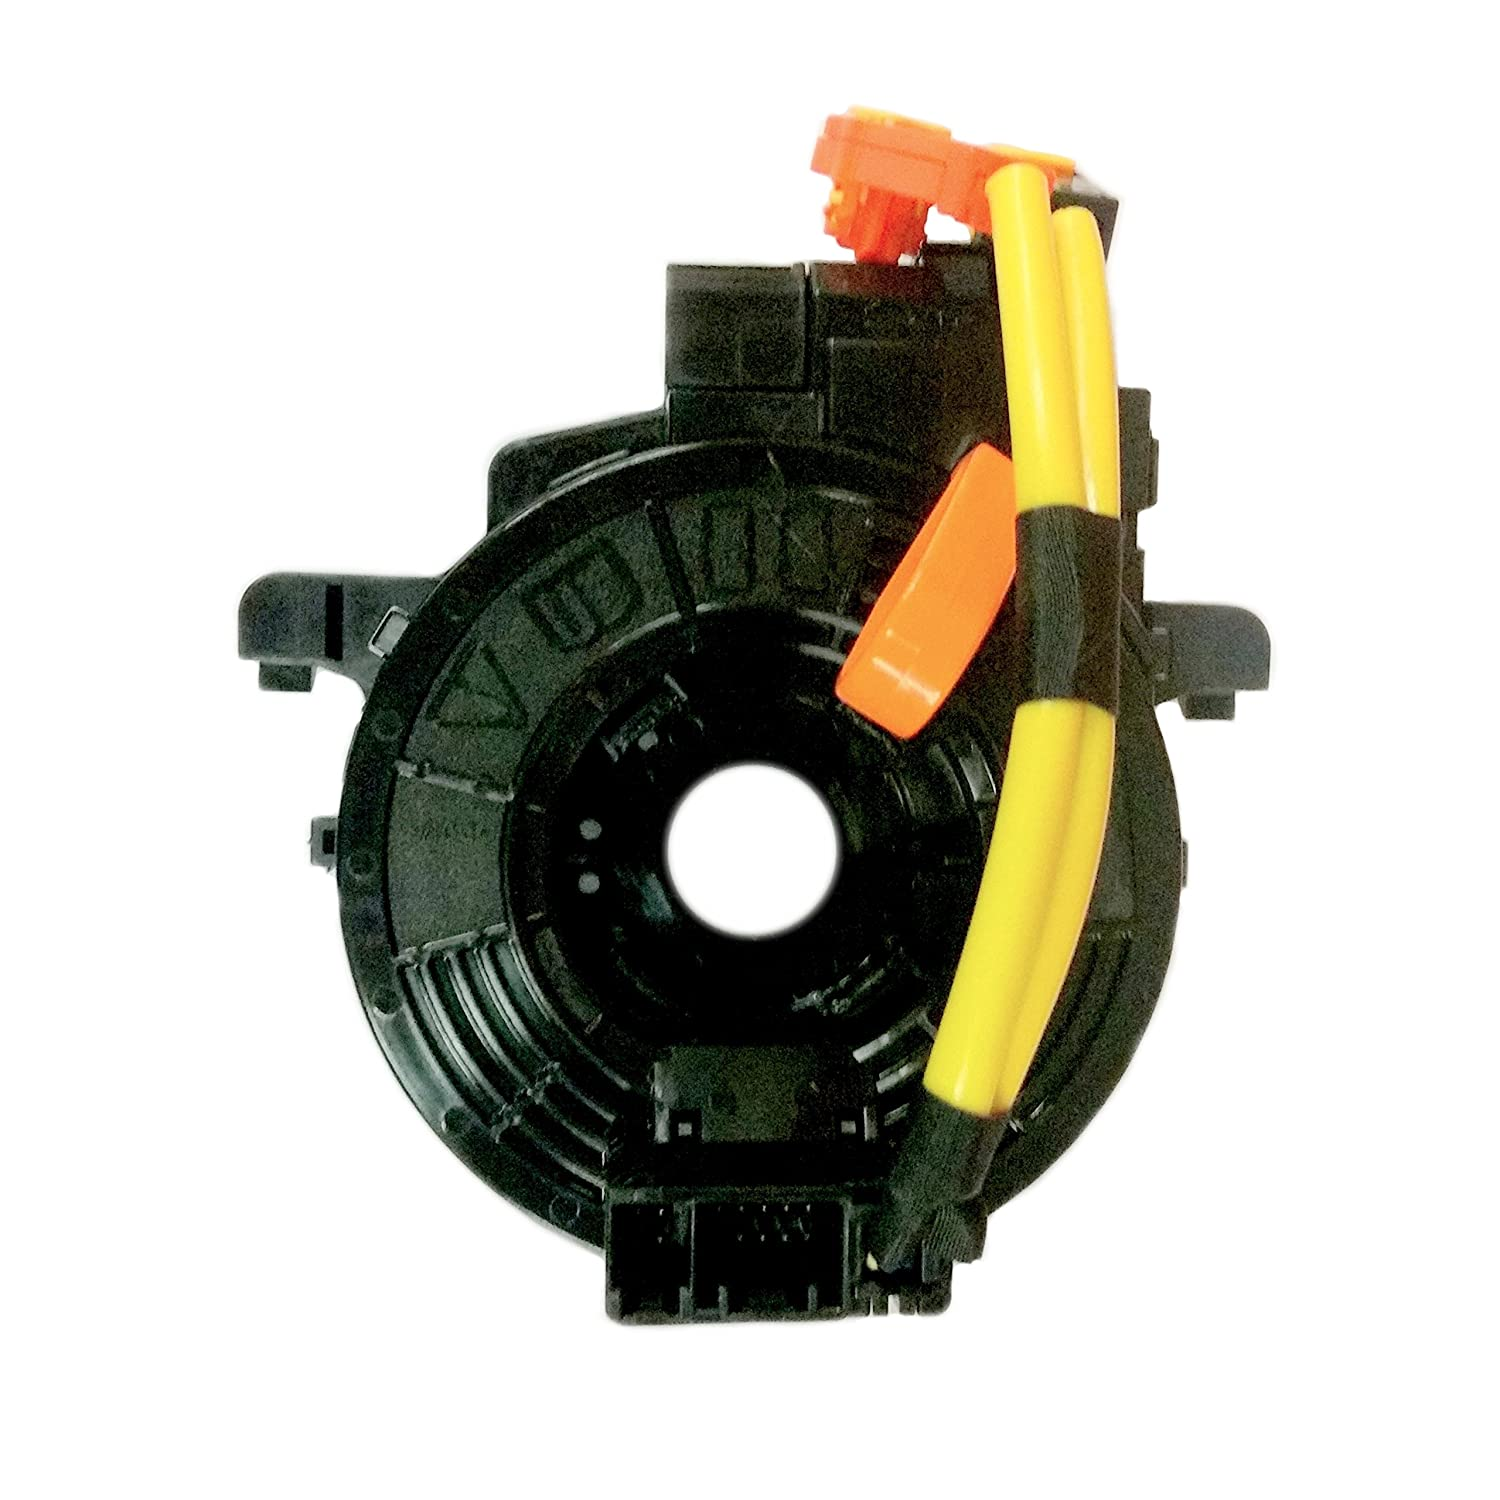 Amazon.com: Replacement part Toyota Spiral Cable Sub Assembly: Automotive